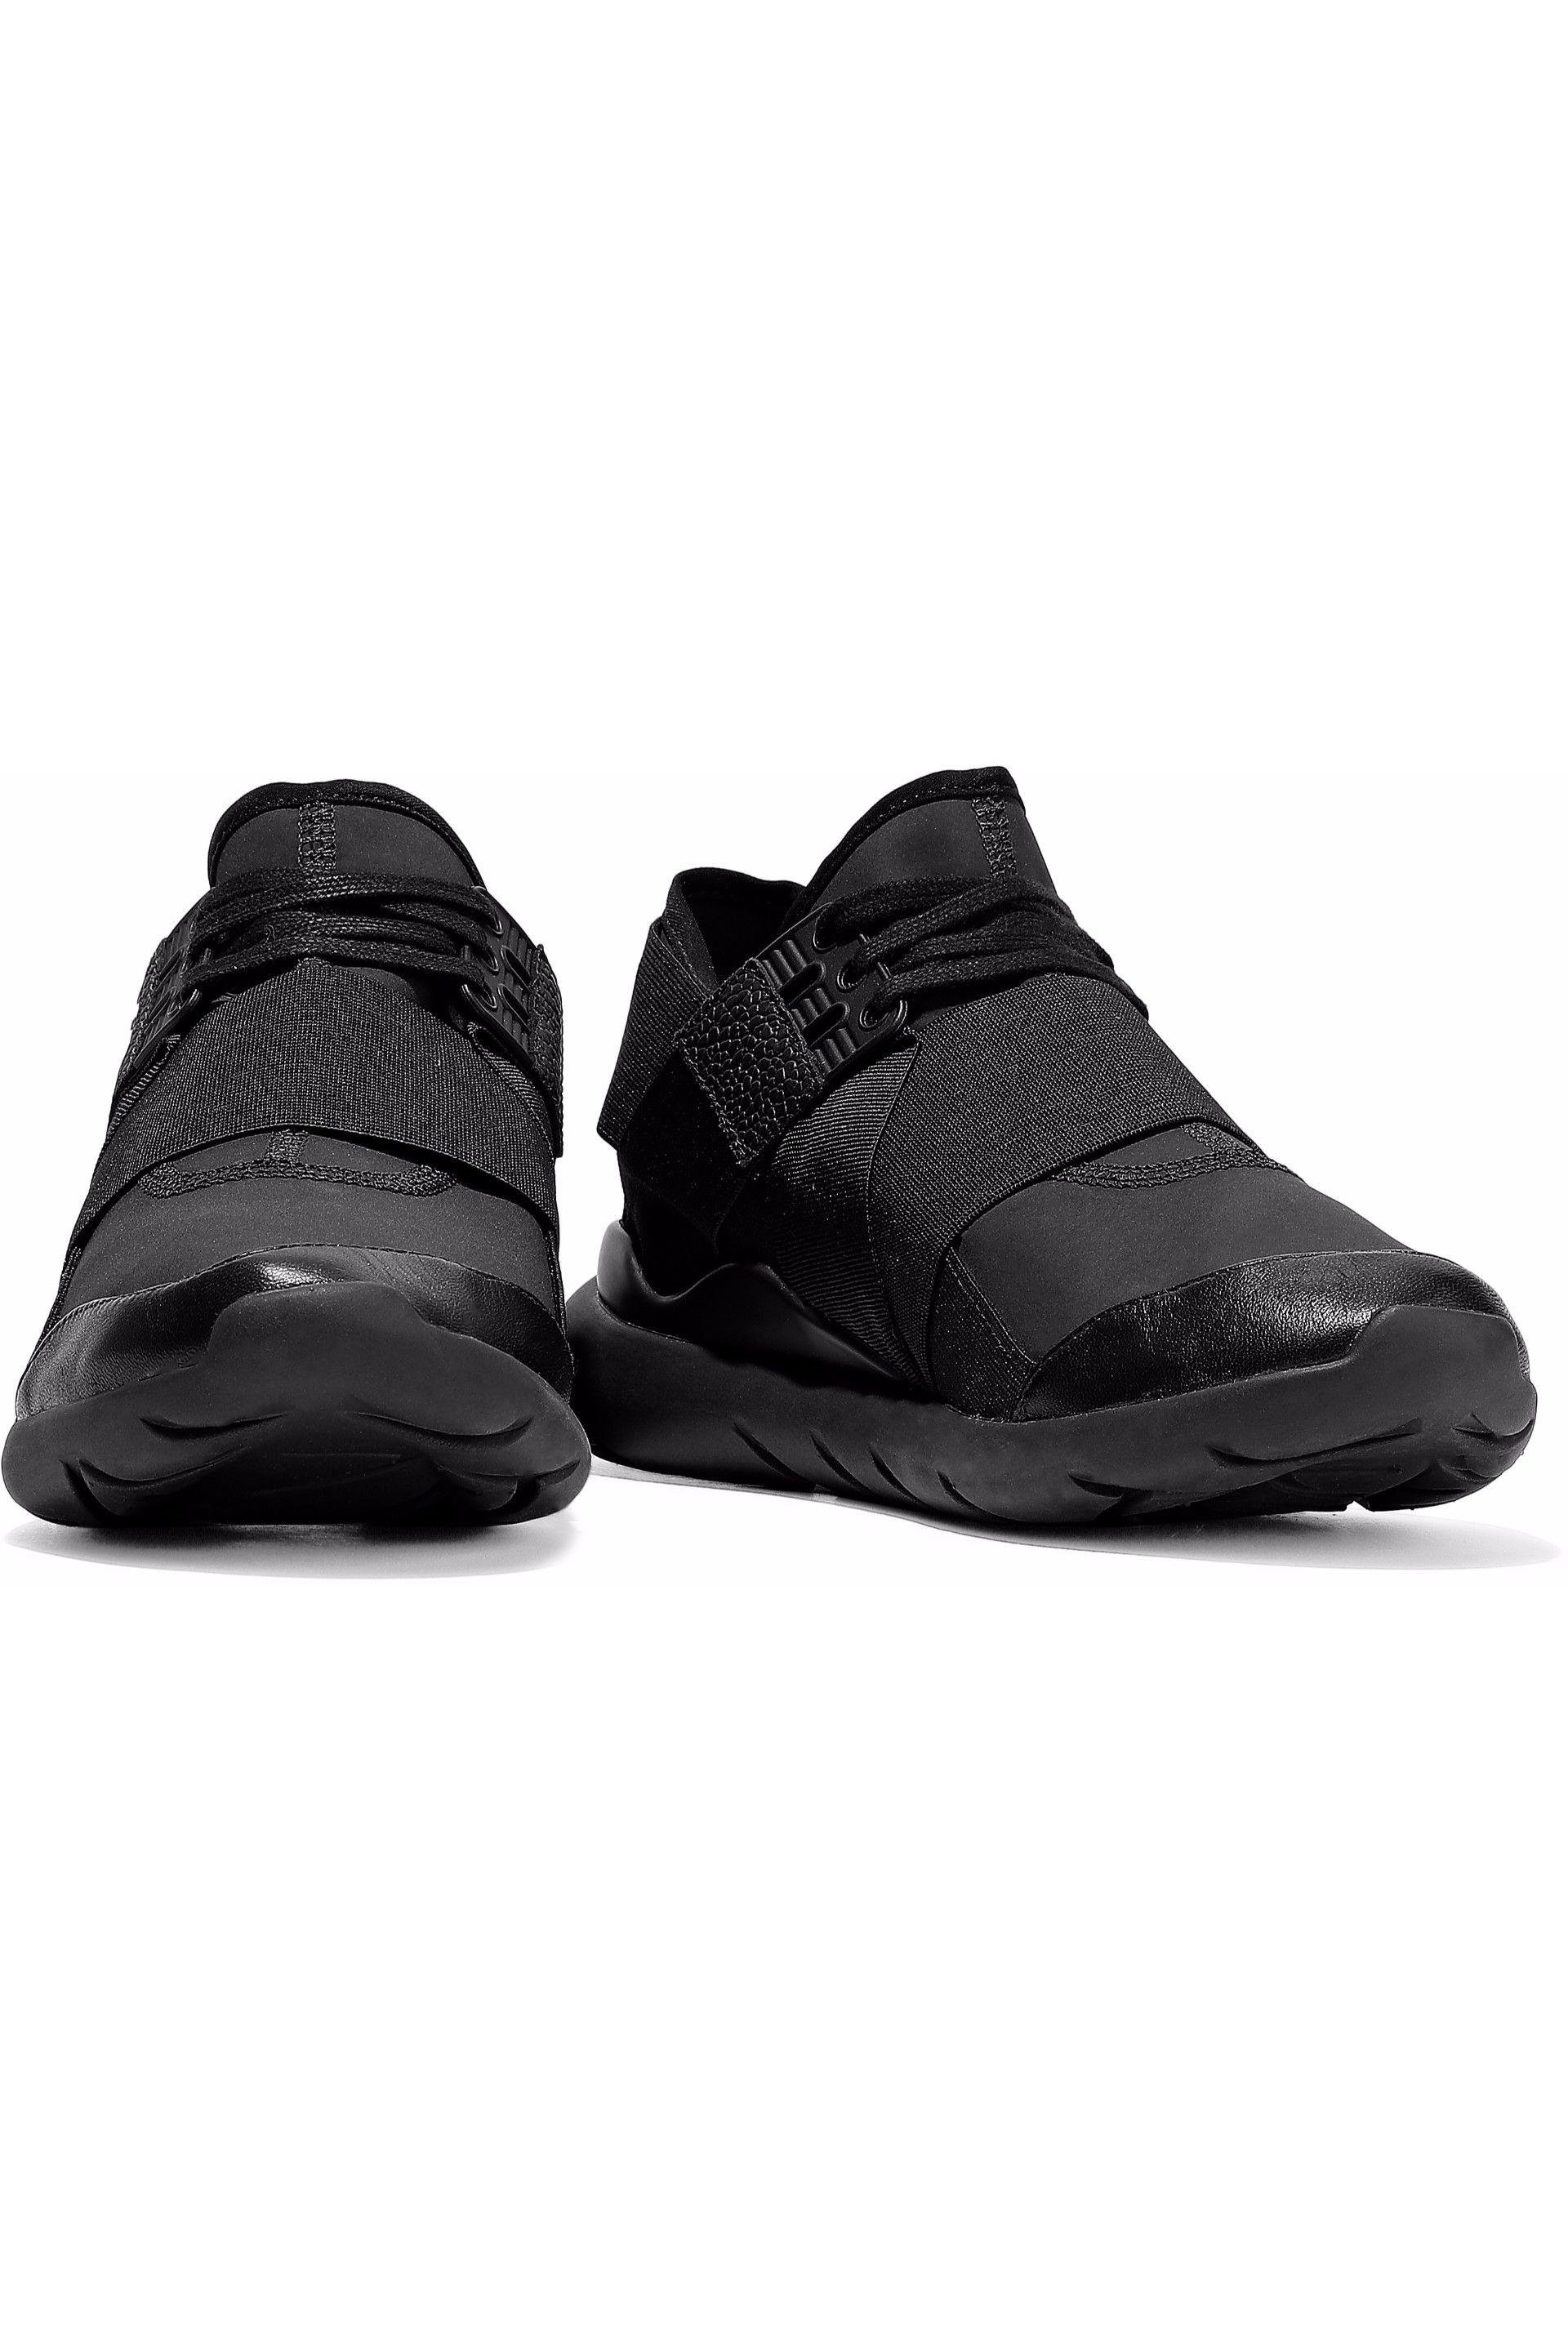 65ebba5be9298 Lyst - Y-3 +adidas Originals Qasa Elle Lace Leather-trimmed Neoprene ...